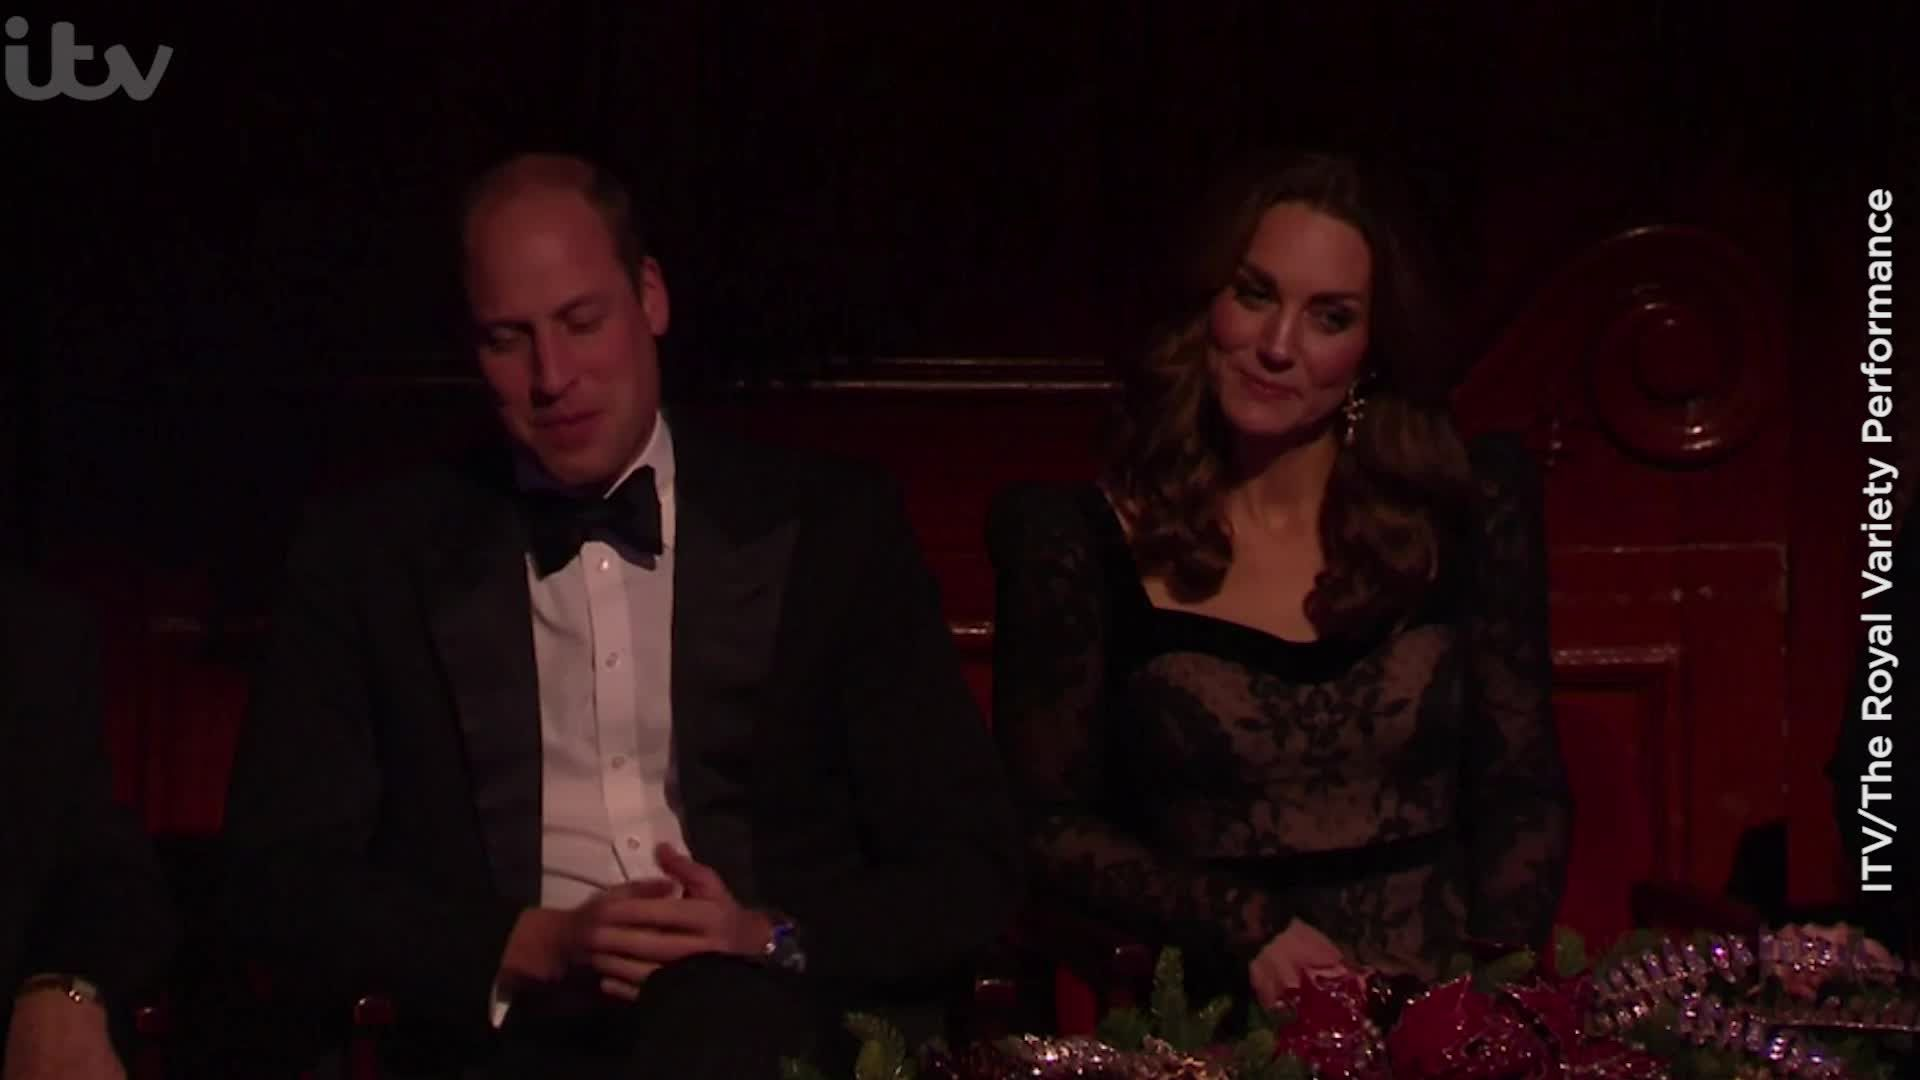 Prince William and Kate Middleton were butt of 'painful' jokes during Royal Variety Performance